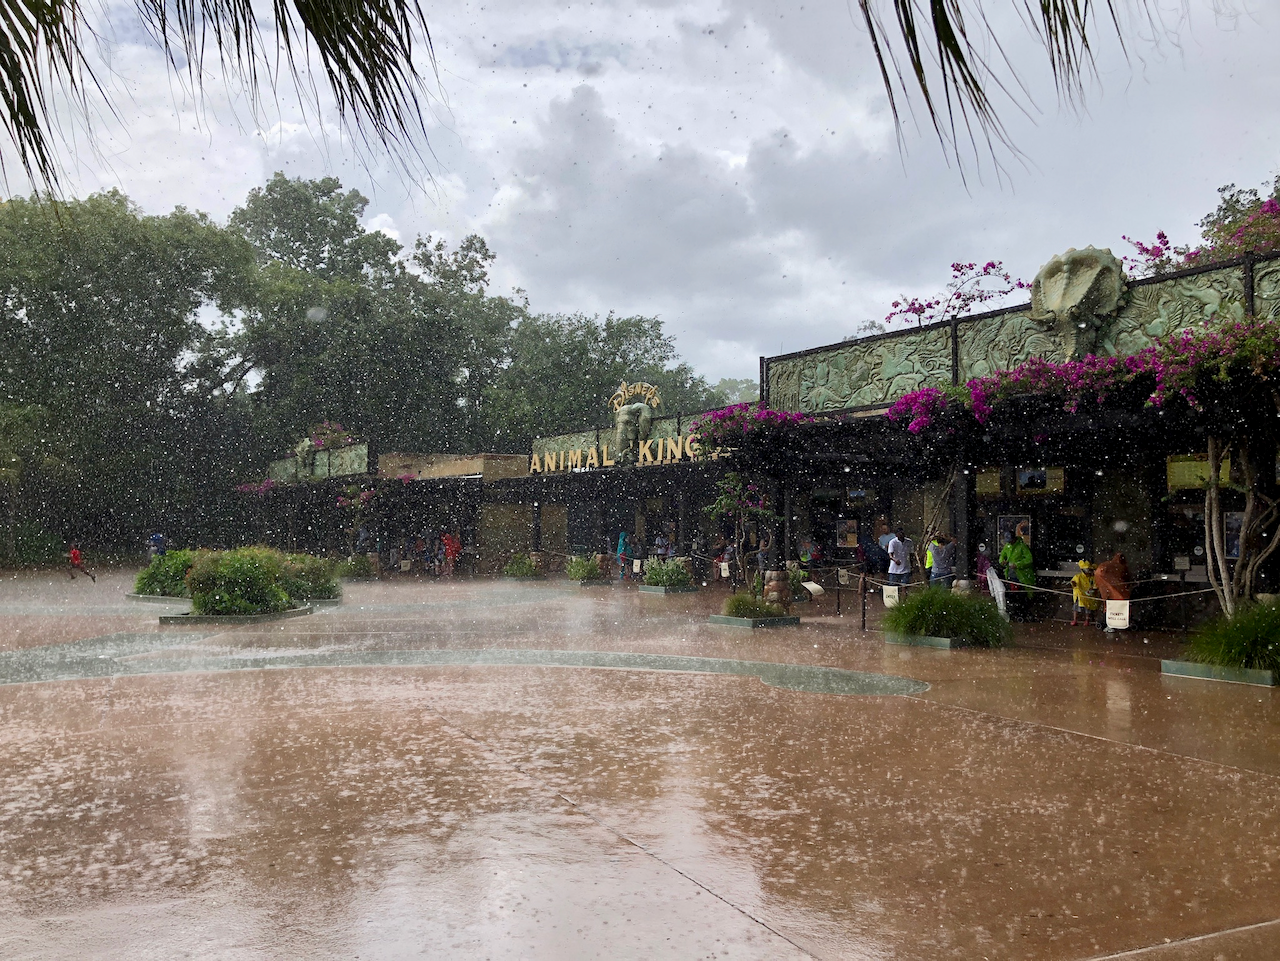 Rainy Day at Animal Kingdom